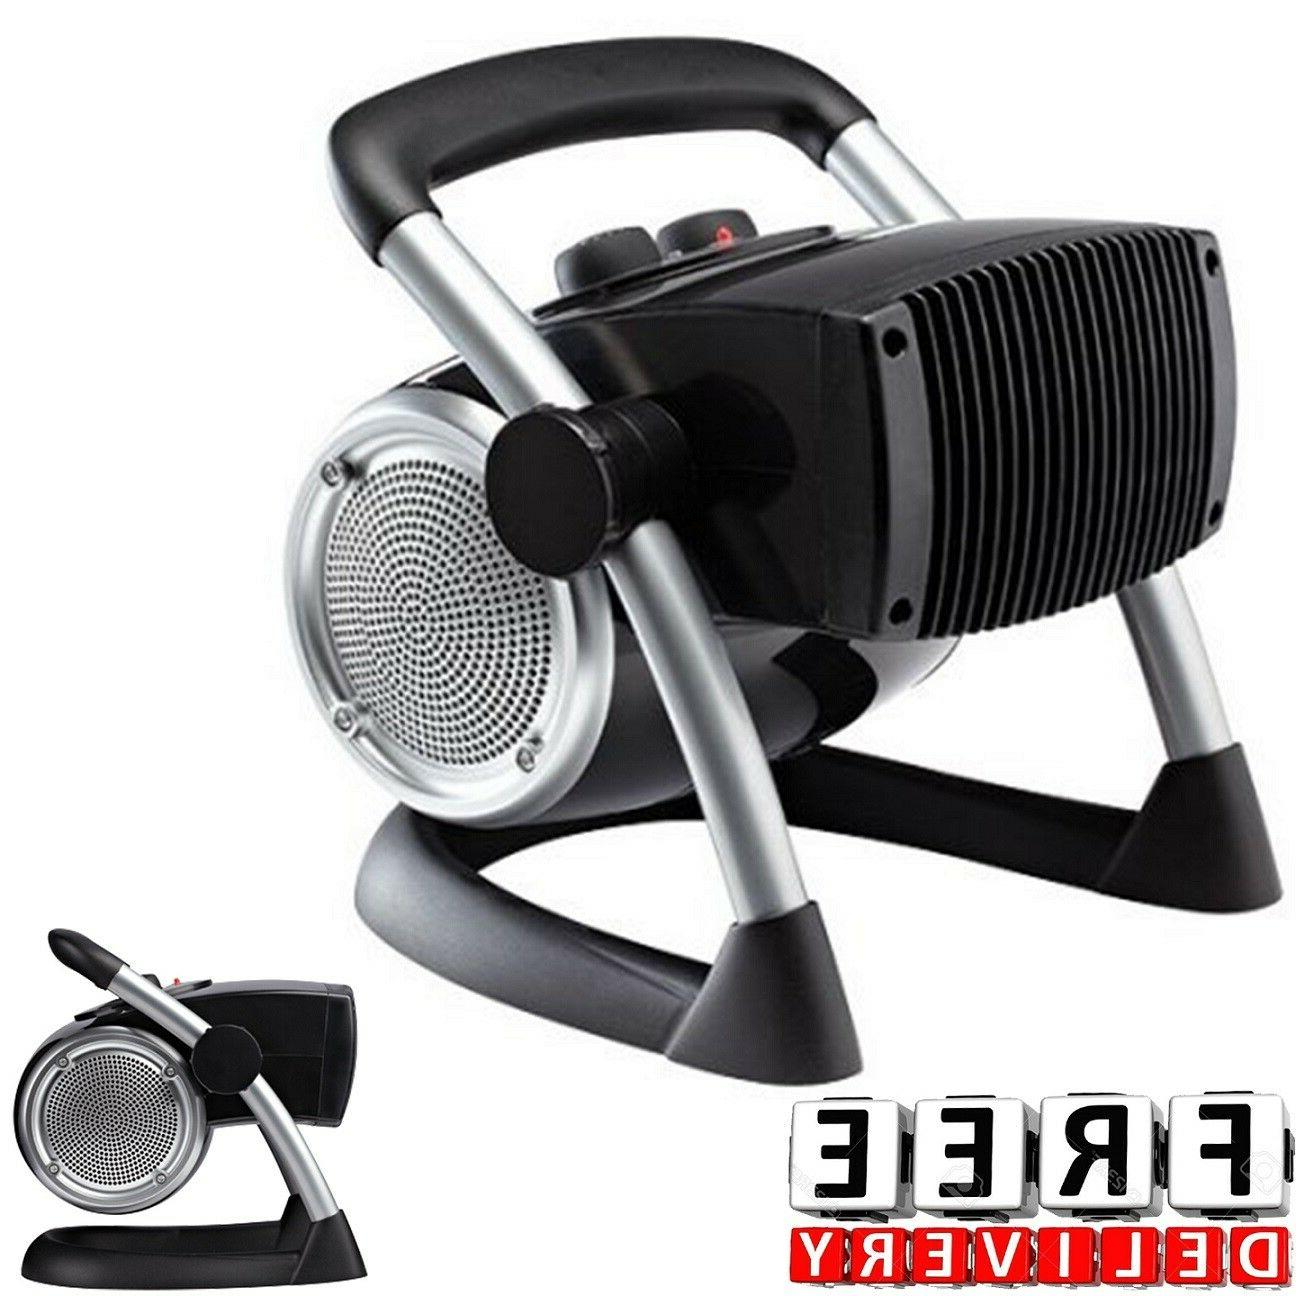 Portable Ceramic Electric 1500W Office Garage New